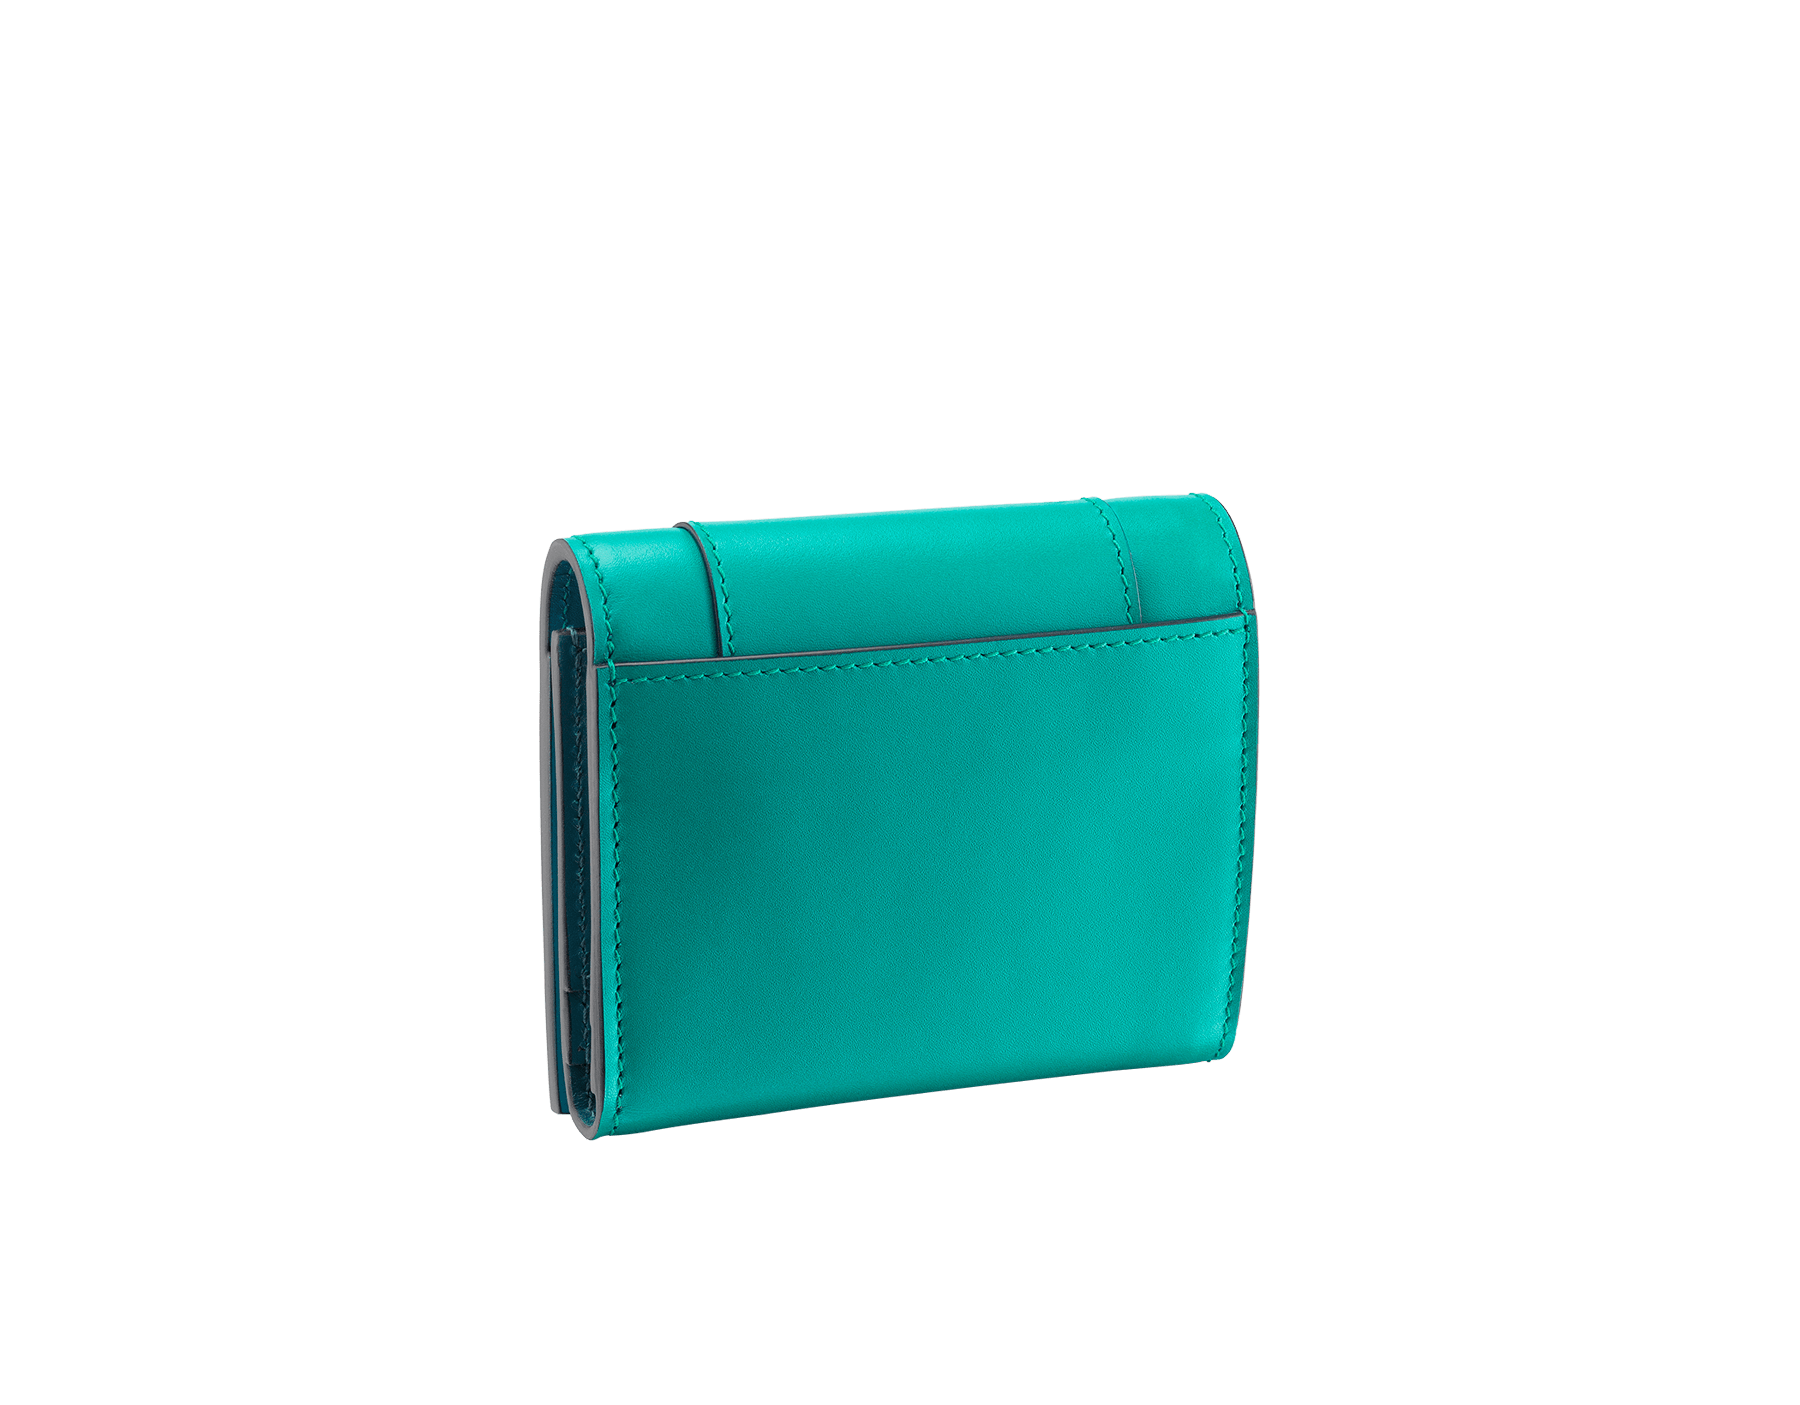 Serpenti Forever super compact wallet in tropical tourquoise and deep jade calf leather. Iconic snakehead stud closure in black and white enamel, with green malachite enamel eyes. 288038 image 3